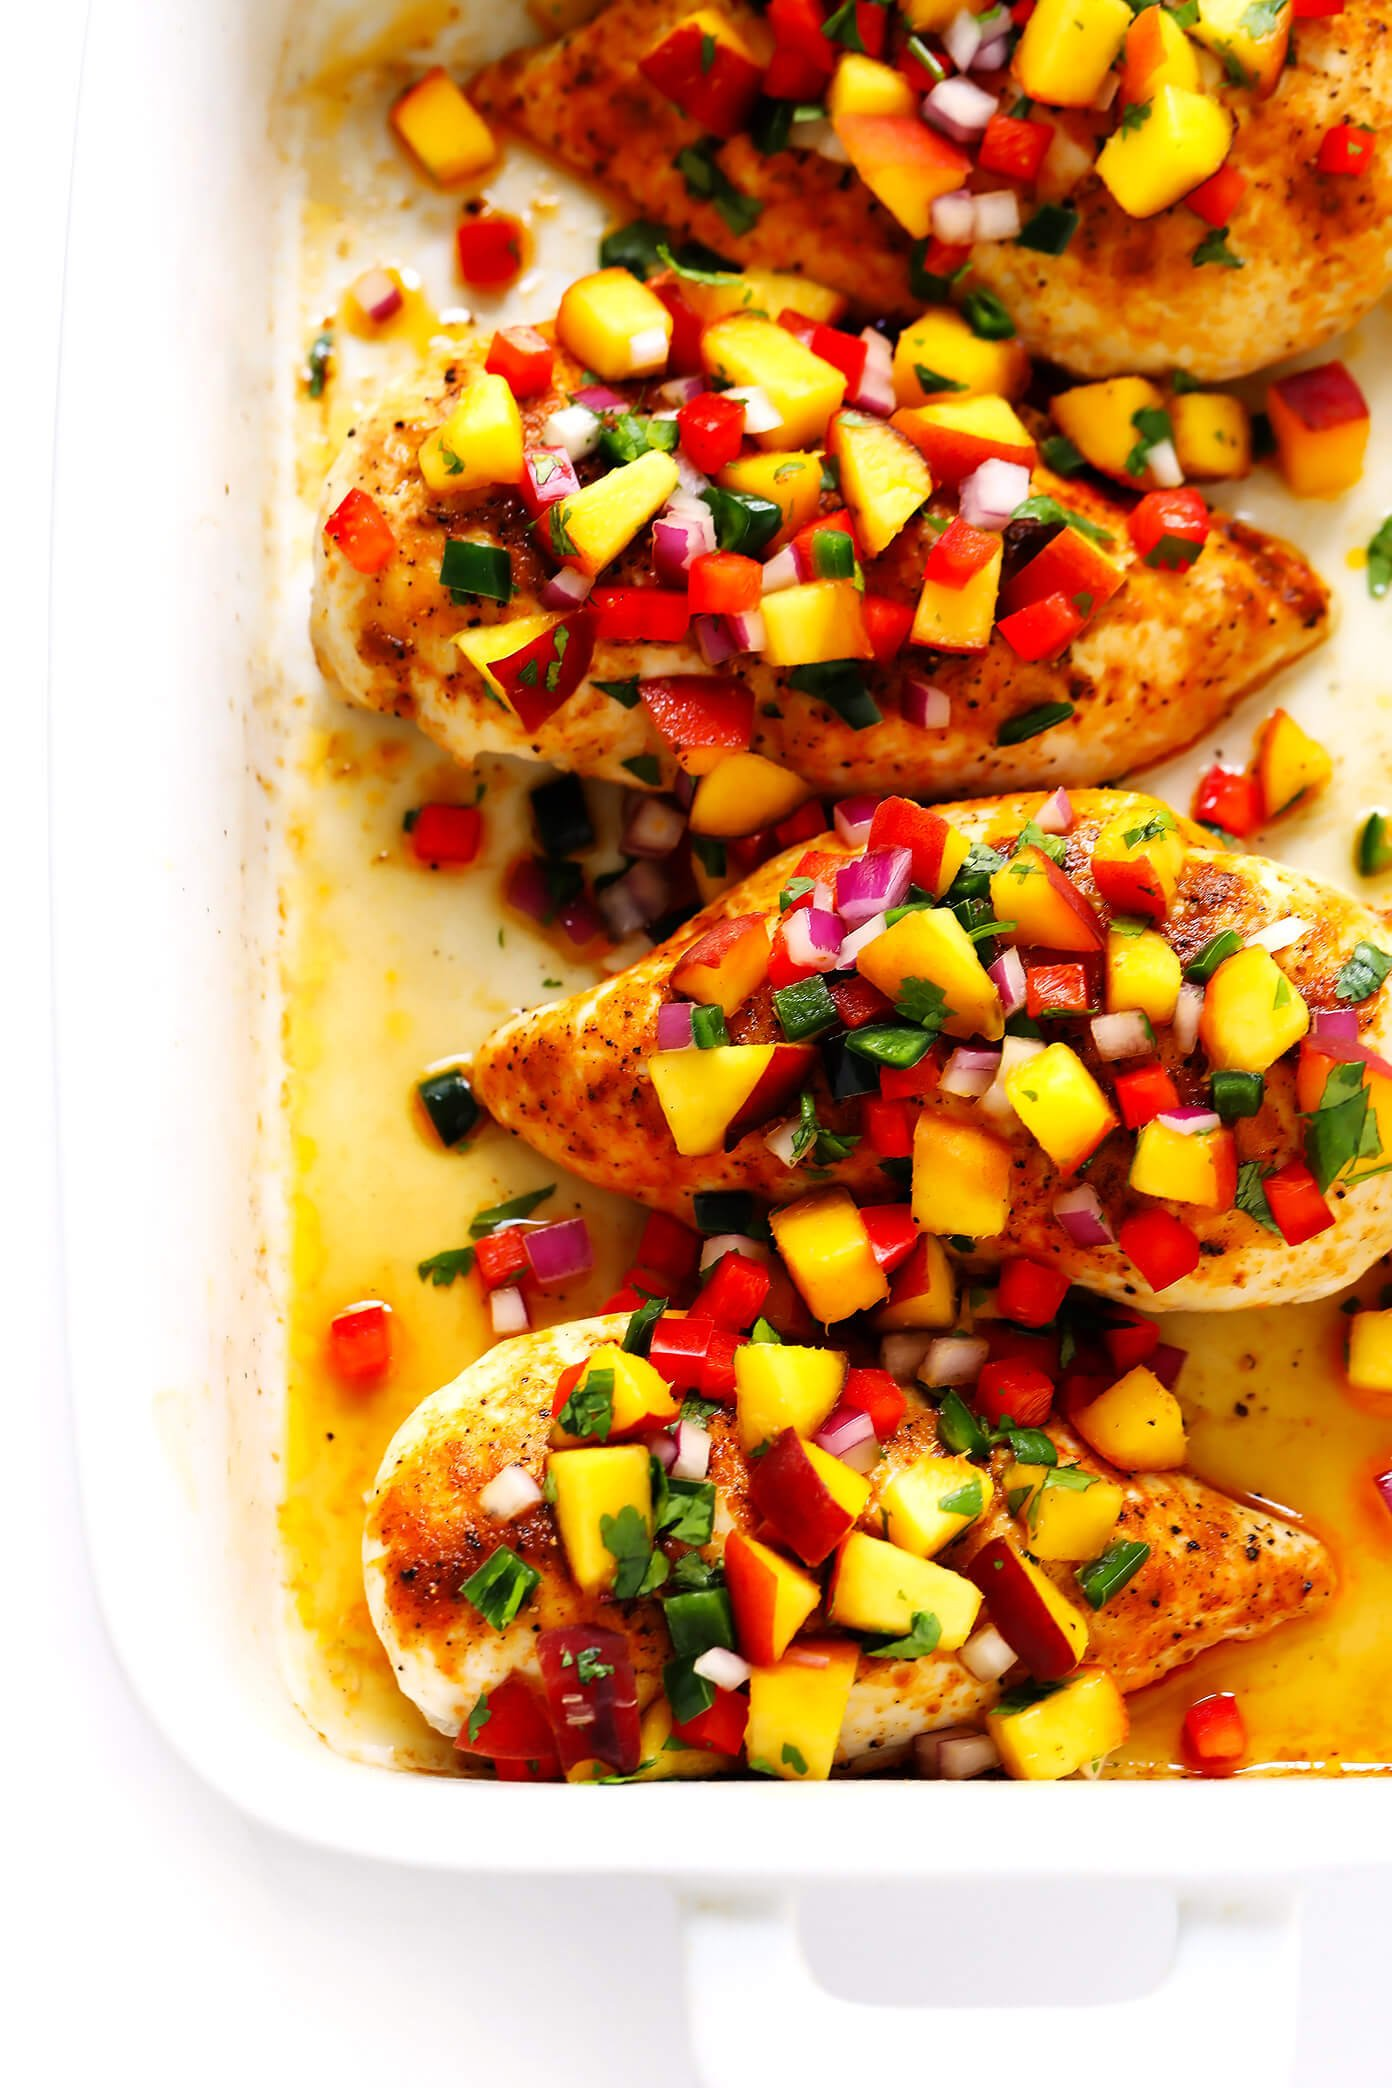 Ginger Baked Chicken with Peach Salsa Recipe